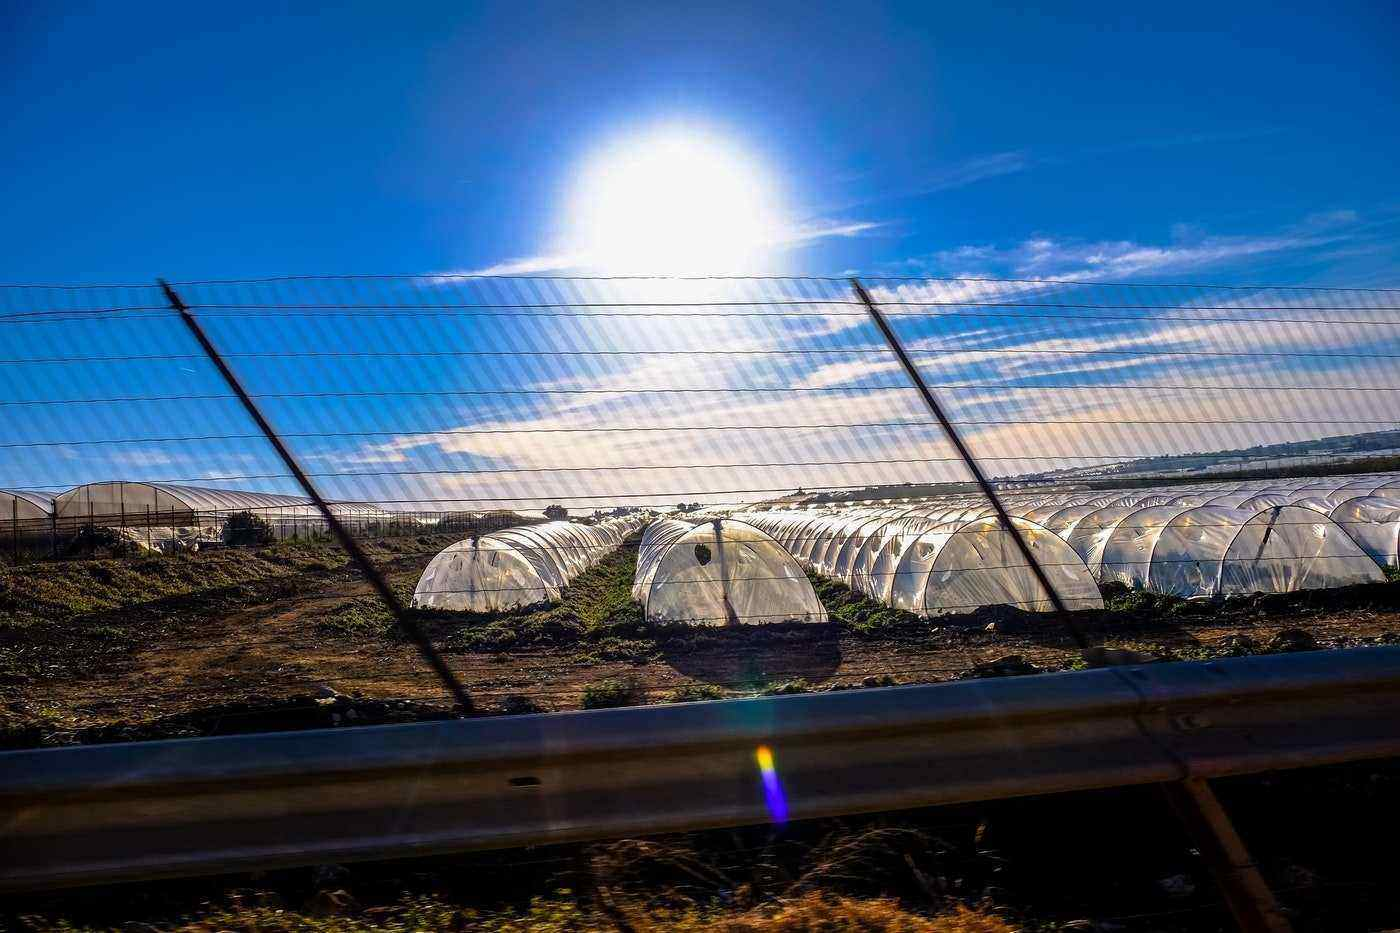 sun shining on greenhouses - greenhouse climate control